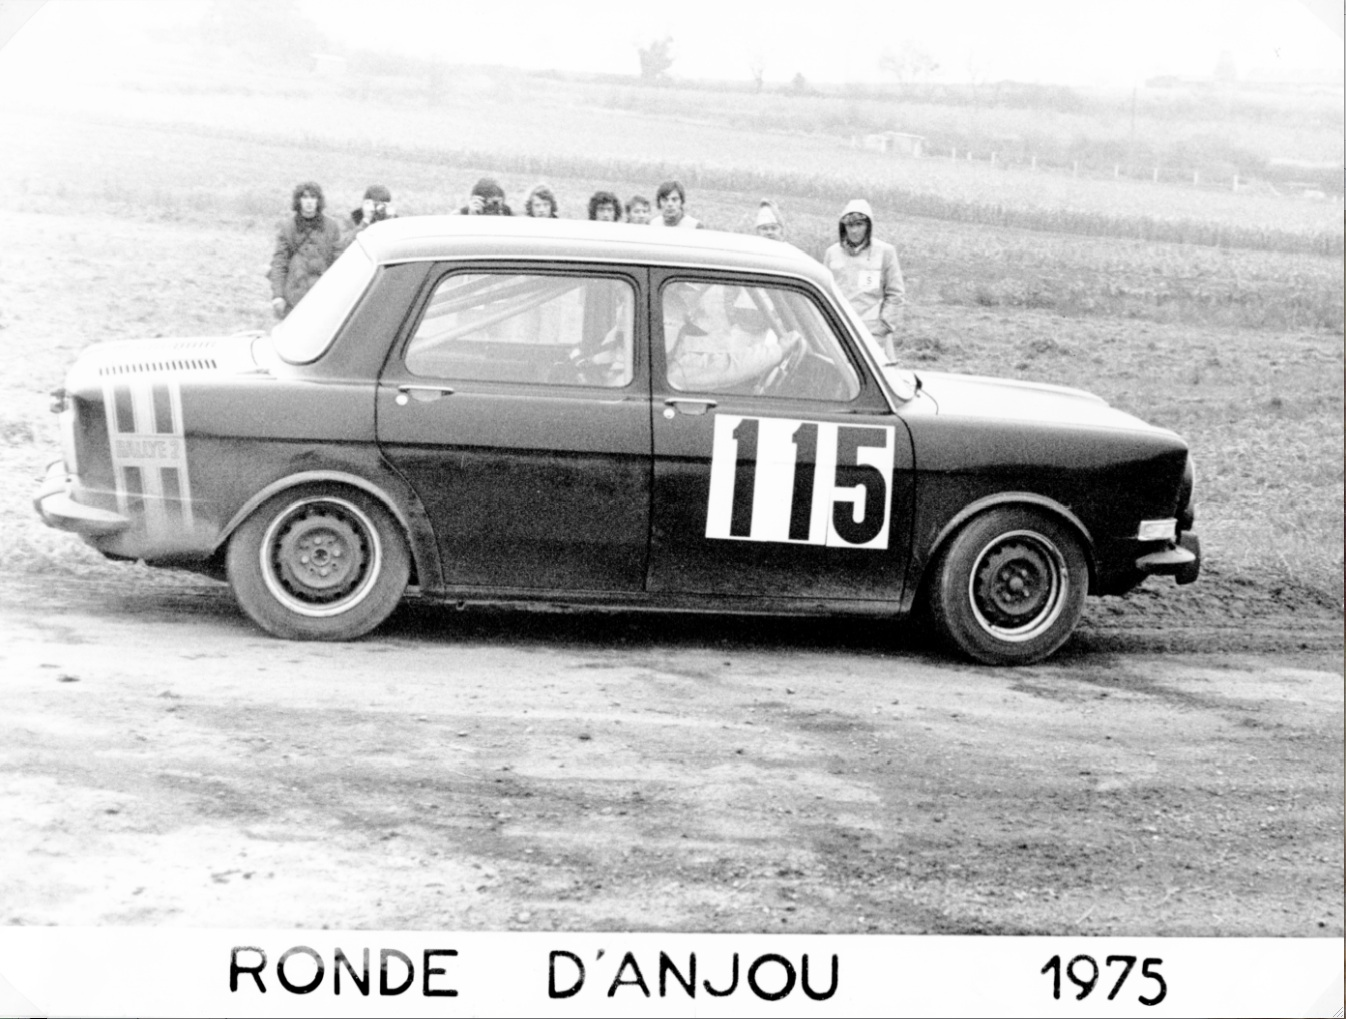 1975 SIMCA 1000 R2 FOURNIER-LAROQUE ANJOU 2